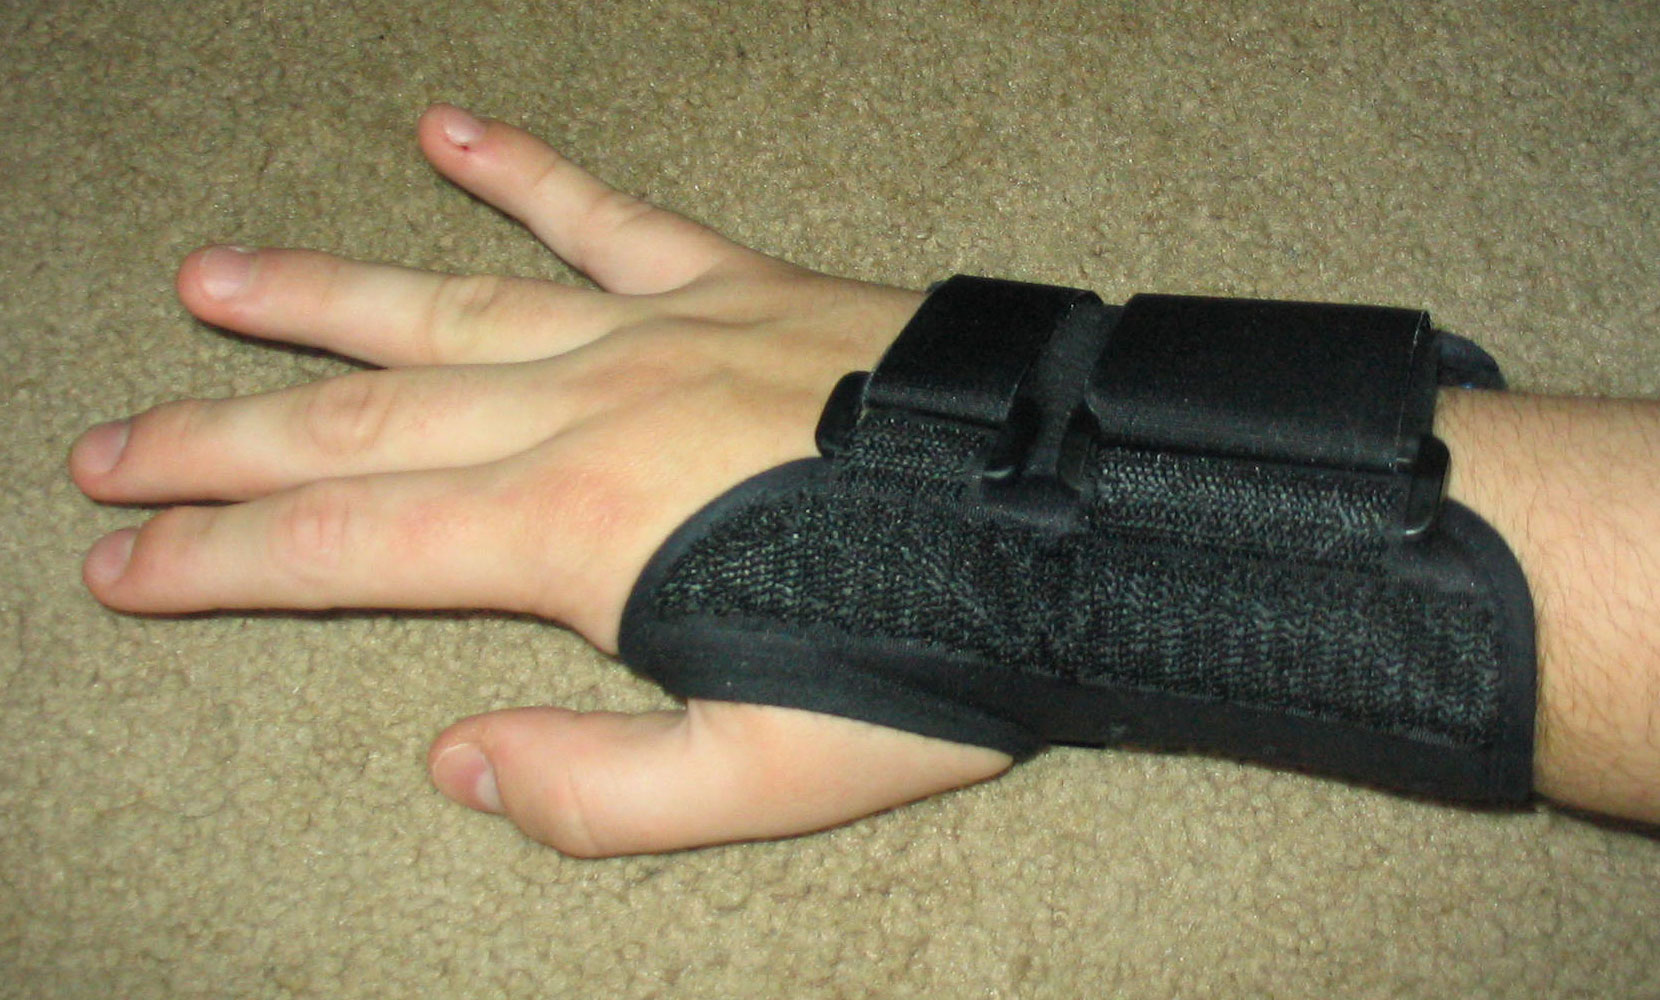 2015-09-05-1441490094-5093626-Carpal_tunnel_splint.jpg